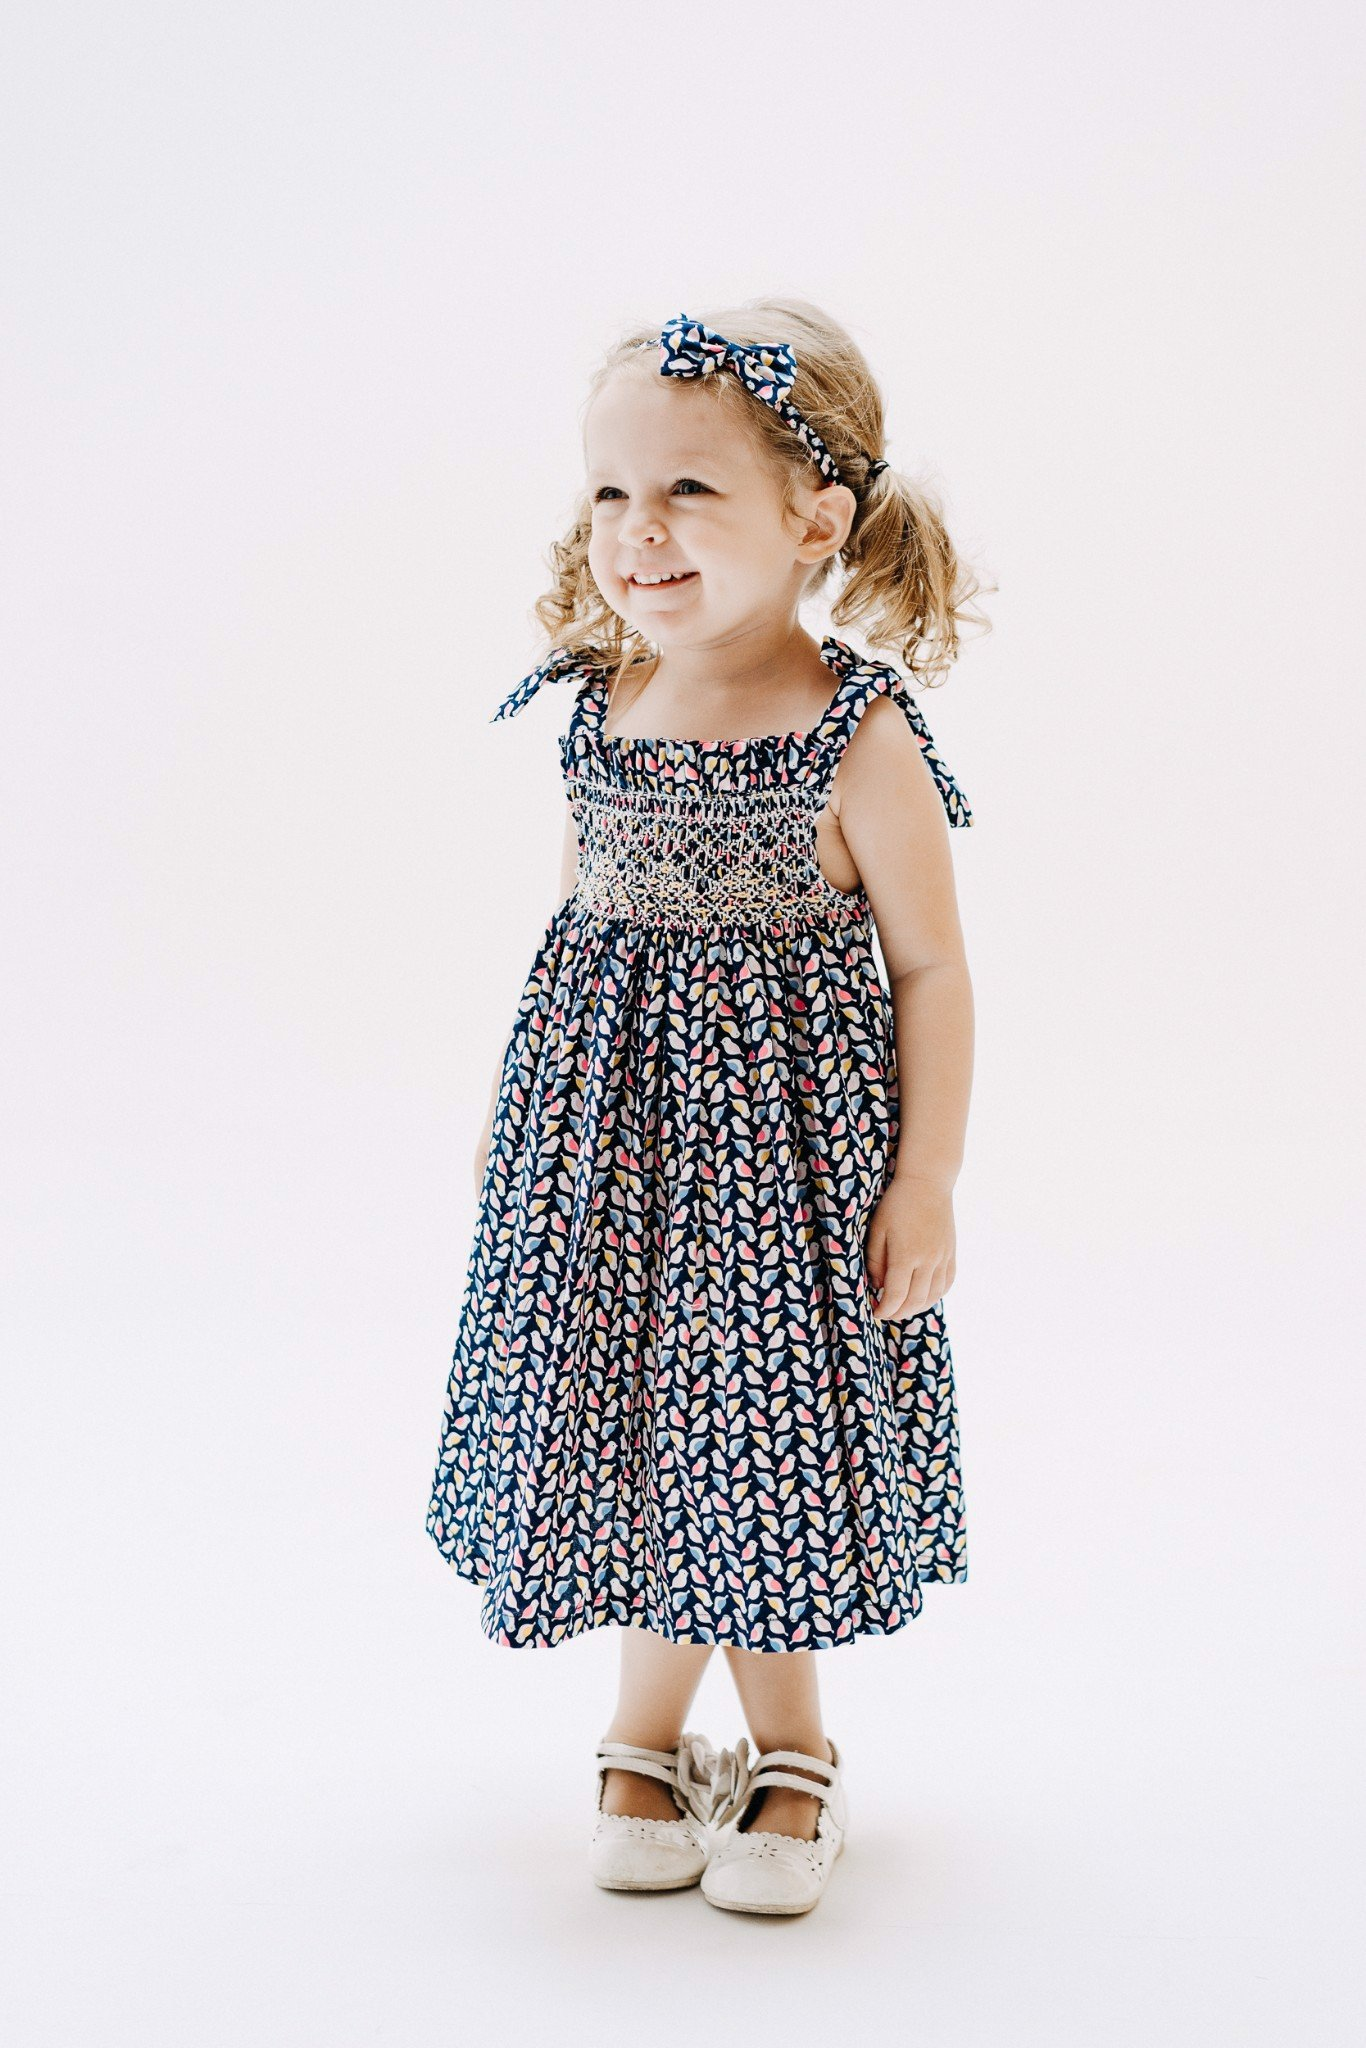 FLOCK SPARROWS SM DRESS